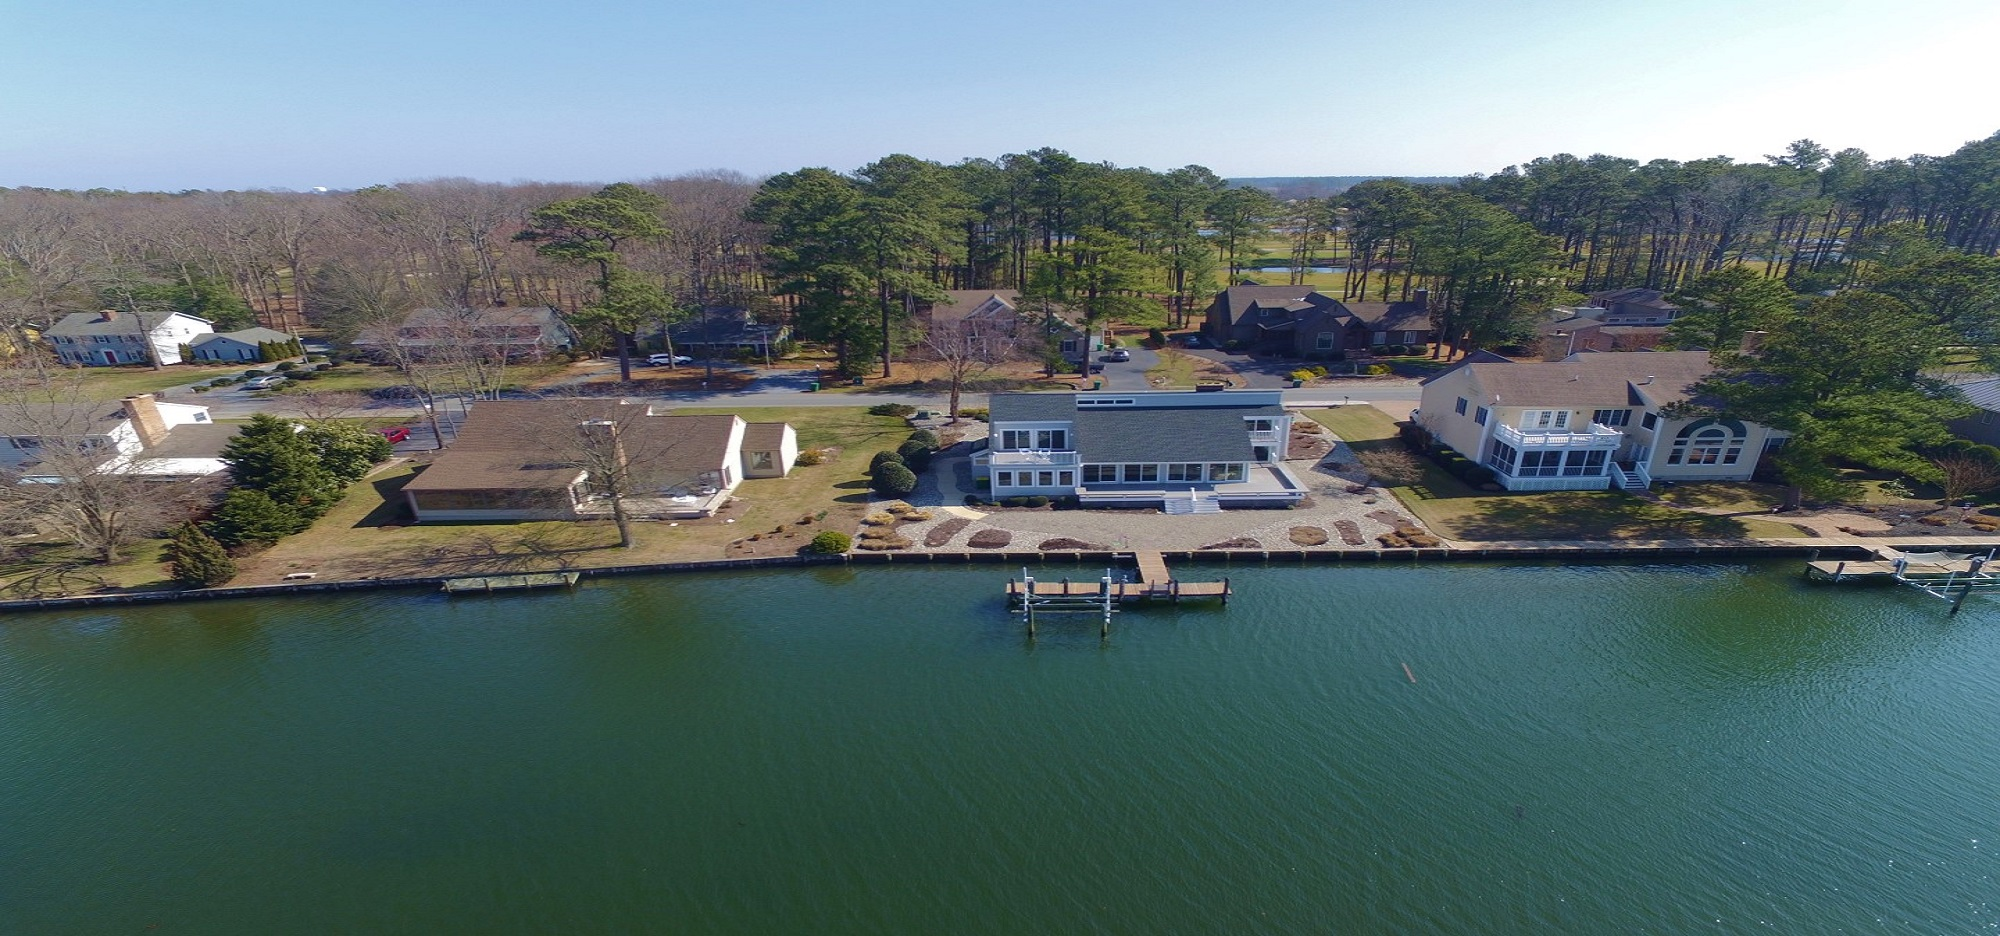 33 West Side Drive, Rehoboth : $1,368,000